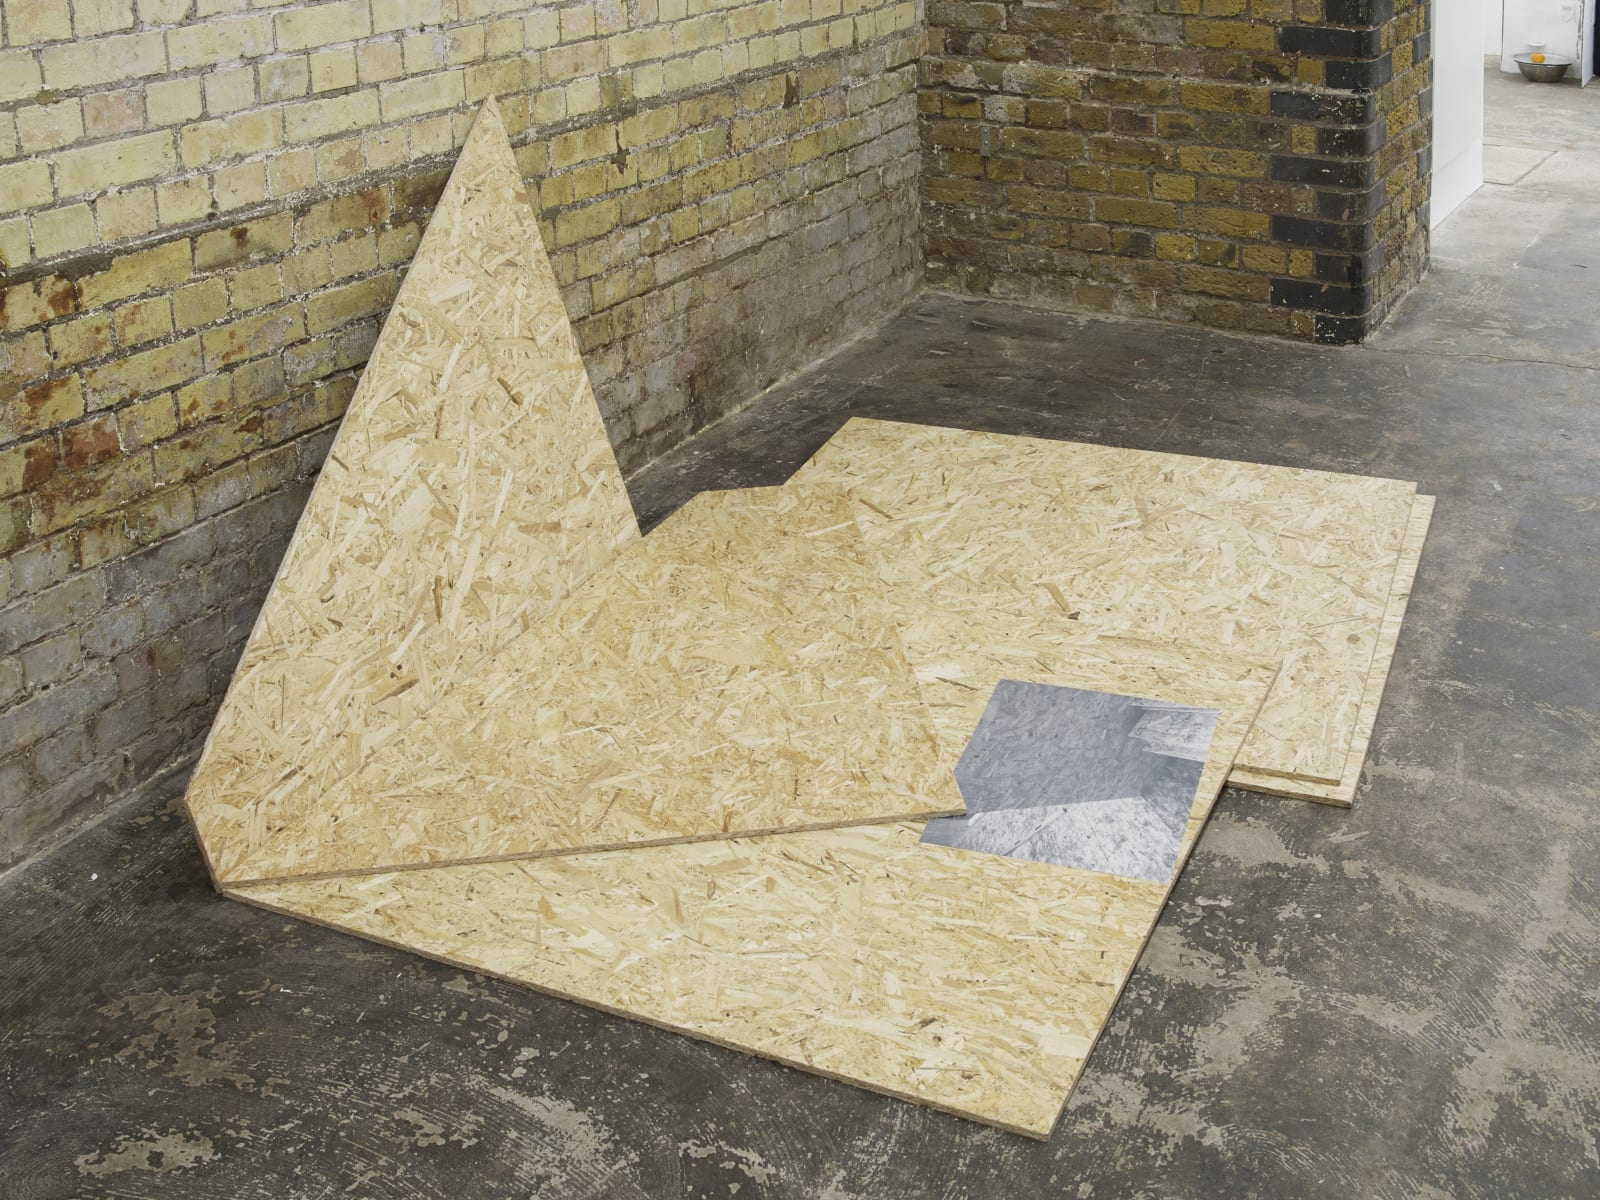 Anne Tallentire, GF3-3, 2018, OSB boards and photograph, 90 x 207.5 x 165 cm Courtesy: The artist and Hollybush Gardens, London